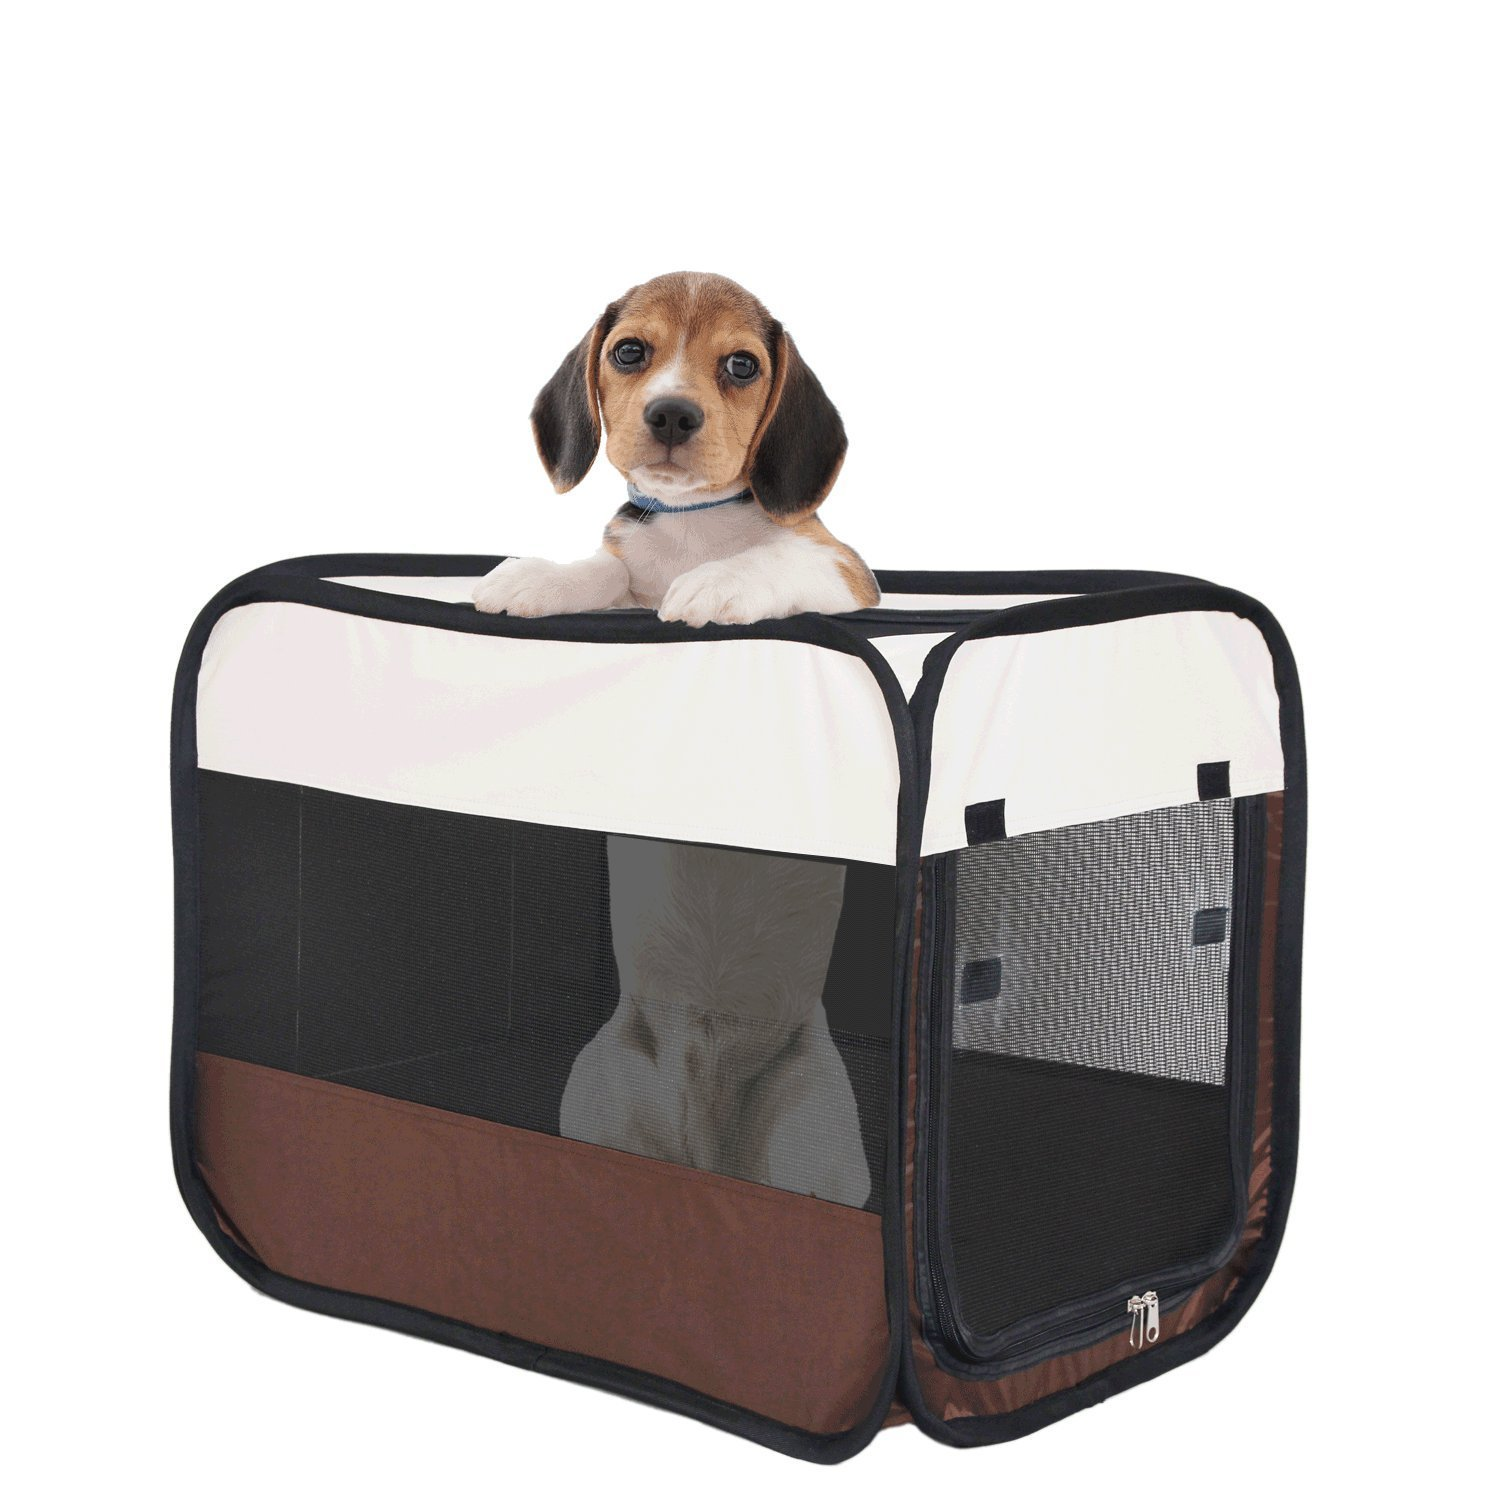 Soft Sided Pet Pen- Foldable and Portable Playpen Tent/Gray Cage/Collapsible Indoor & Outdoor Crate Travel Use for Dogs, Cats, Rabbits or Other Small Animals'